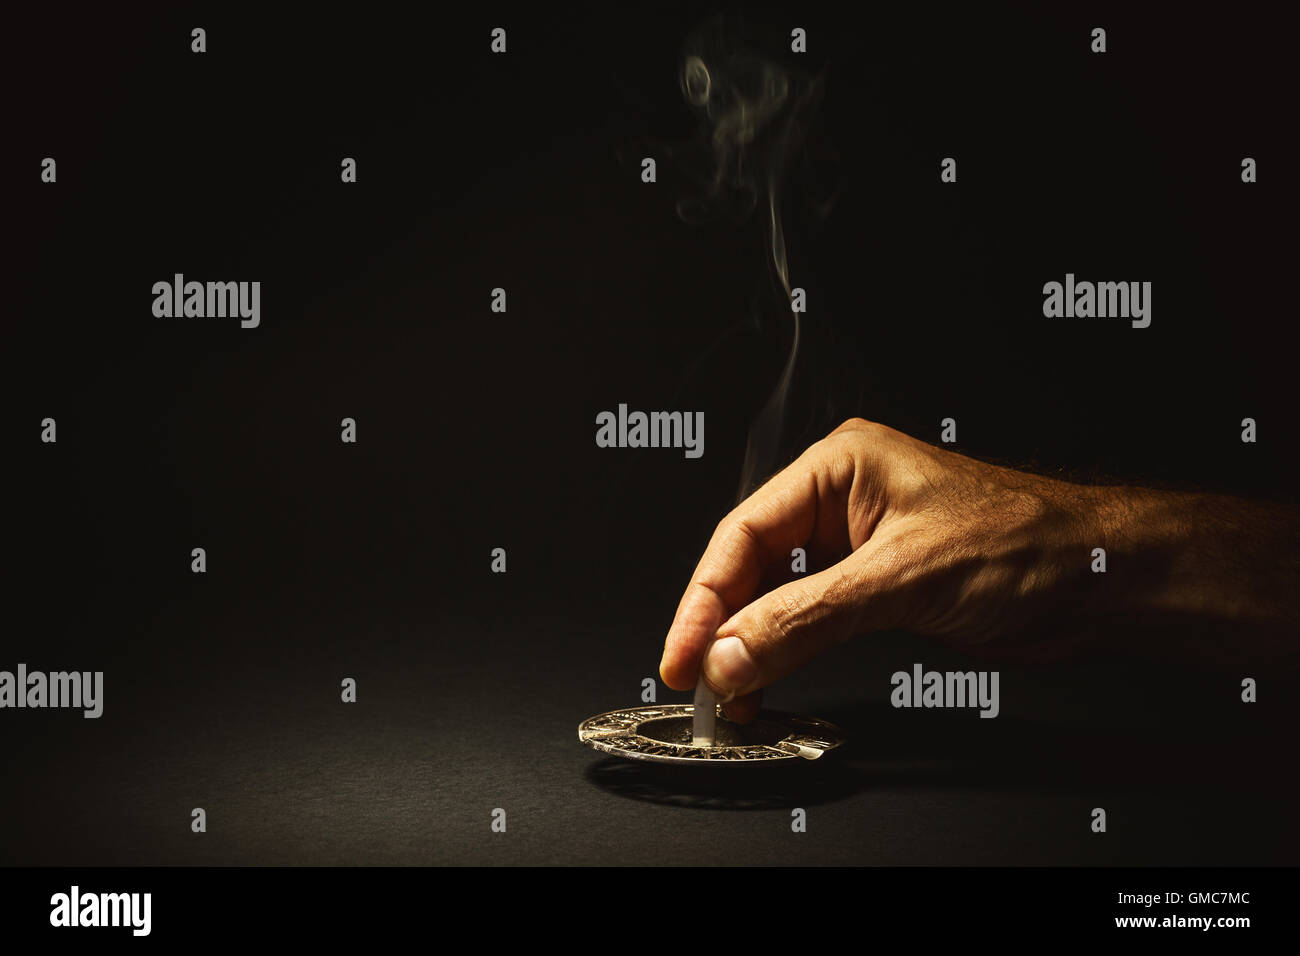 Conceptual composition about quit smoking, man's hand extinguishes a cigar. - Stock Image